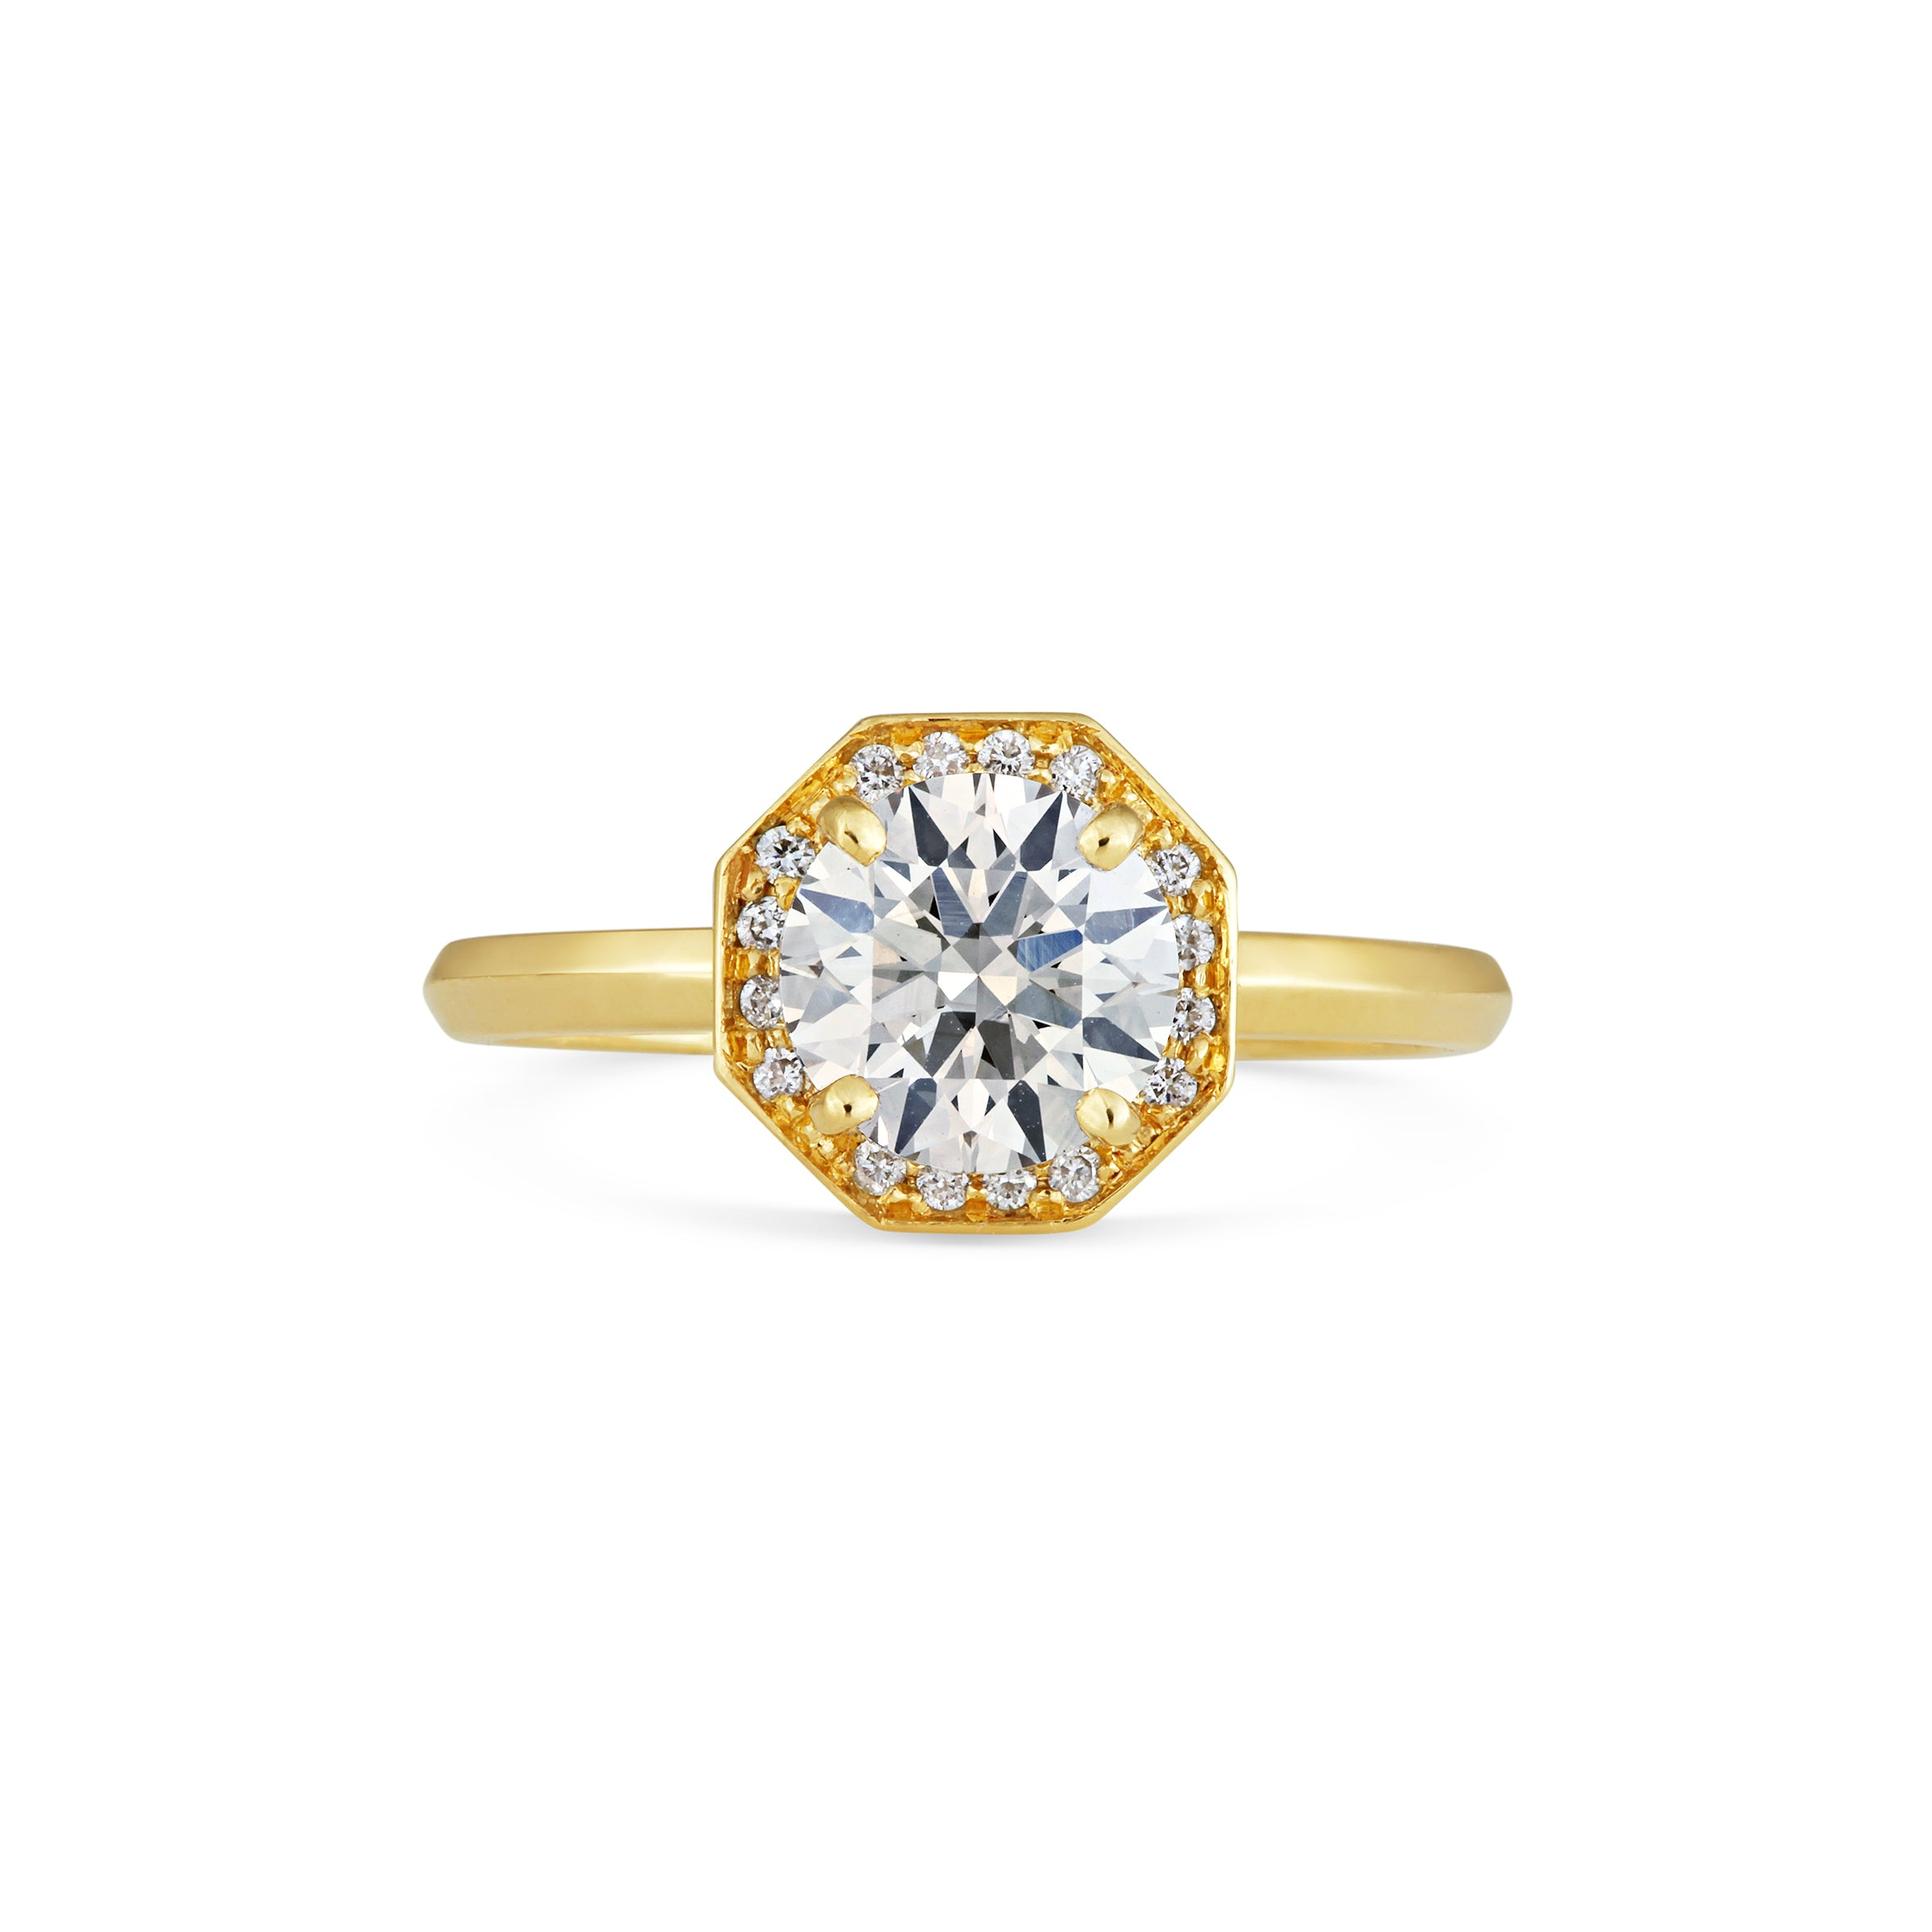 rings ring colored engagement gold sapphire of three luxury fresh rose stone ringthin champagne diamond